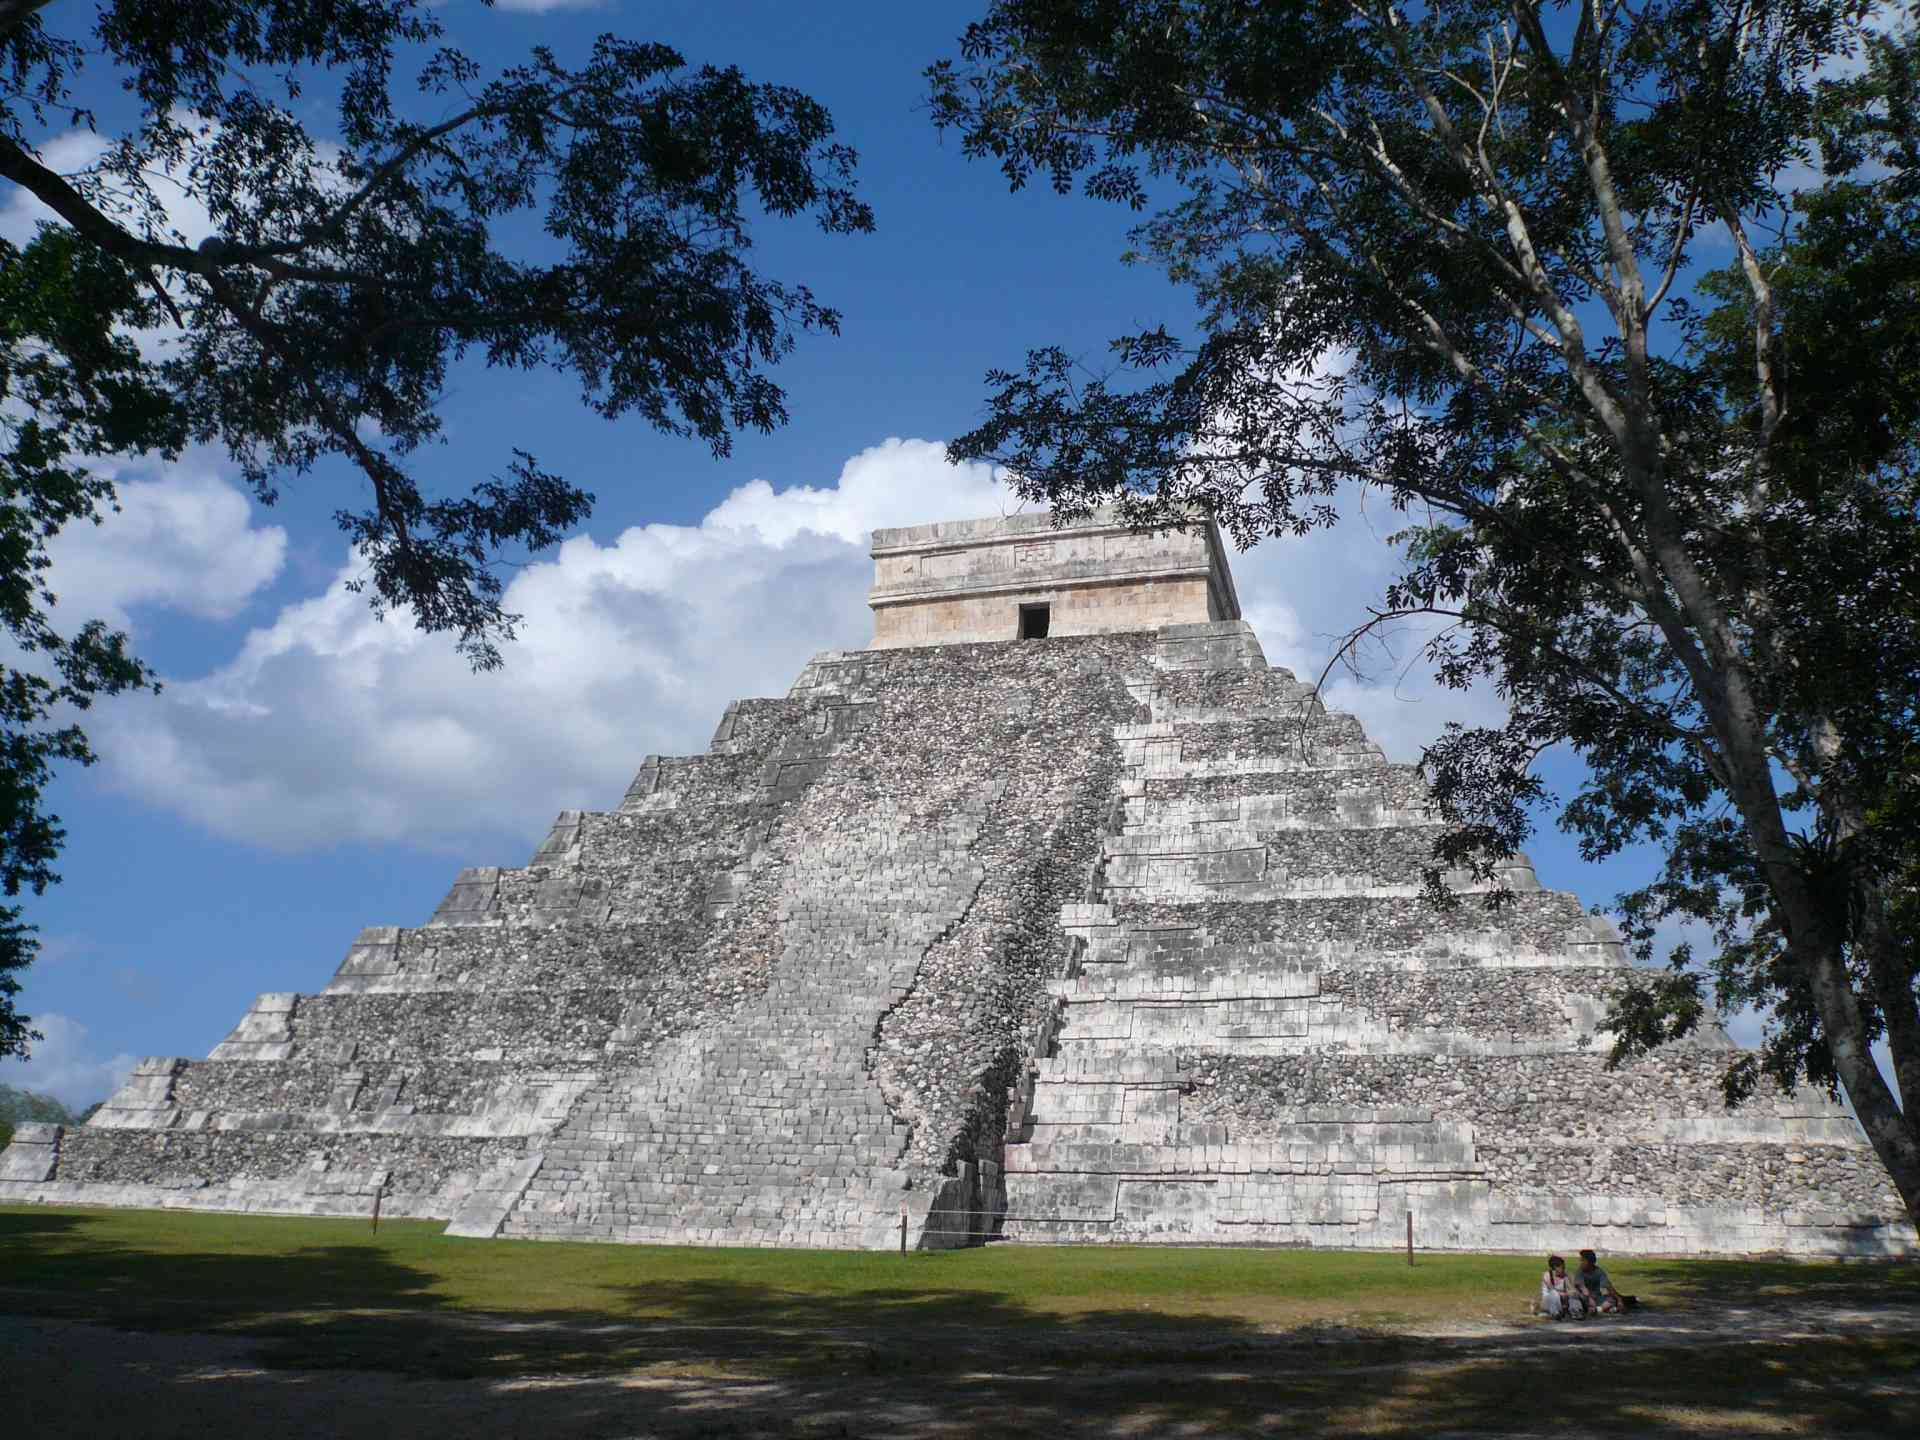 Visit the most famous Mayan site